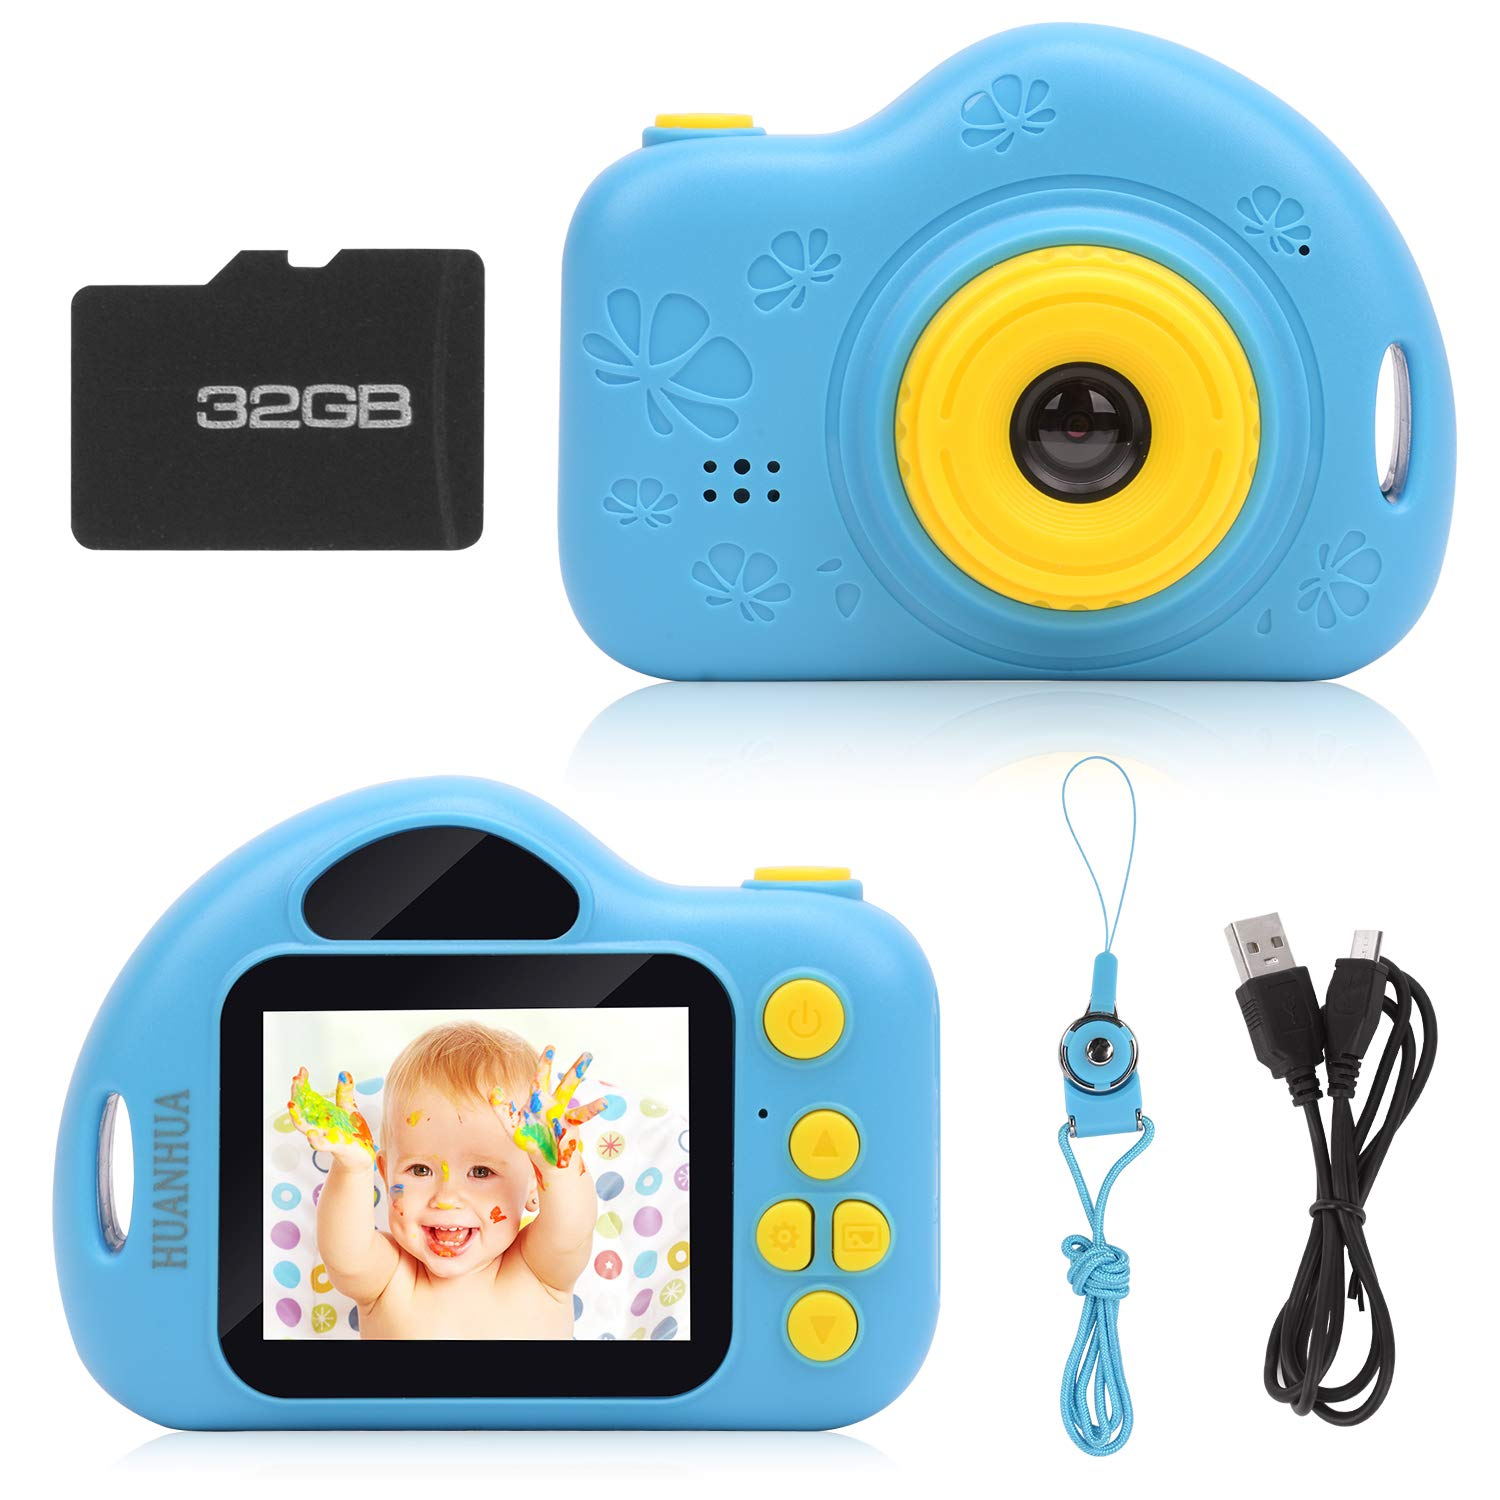 HUANHUA Kids Camera, Children's Digital Camera with 32GB TF Card, Rechargeable Selfie Camera, Child Camcorder with 2.0 inches Screen, HD 5MP/1080P Dual Lens, Birthday Gift for Boys Girls Age 3-10